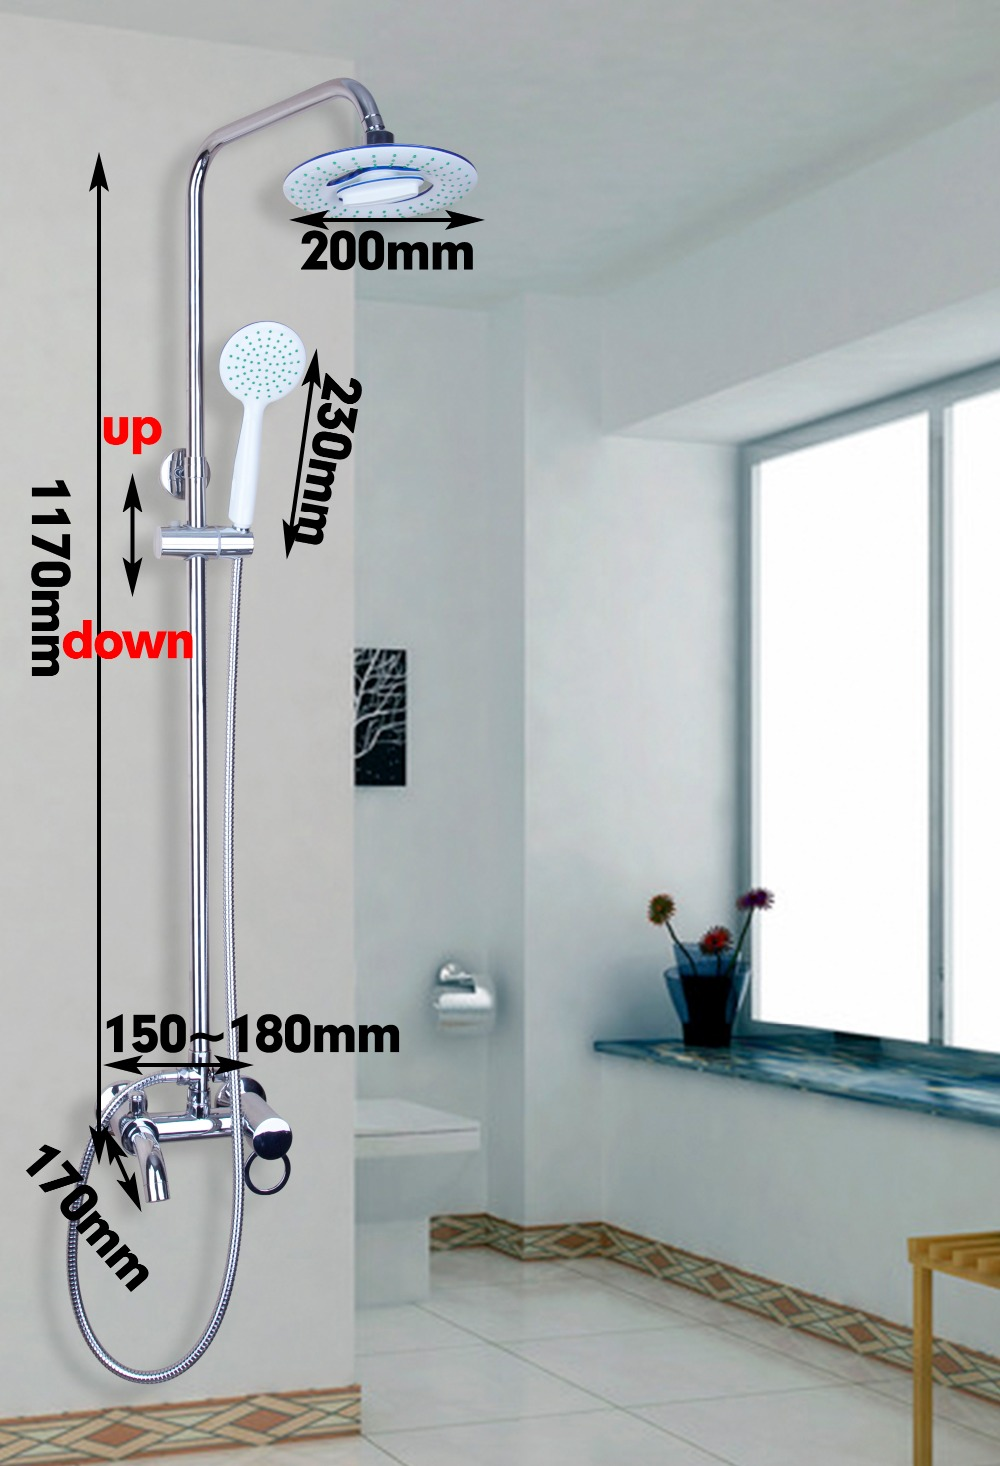 Bathroom Faucets Mixer Tap Wall Mounted Single Handle Shower Sets  Polished Chrome Bathroom  Faucet Tap 8 led new wall mounted ultrathin spray square waterfall handheld shower chrome polished shower sets tap mixer faucet sets head